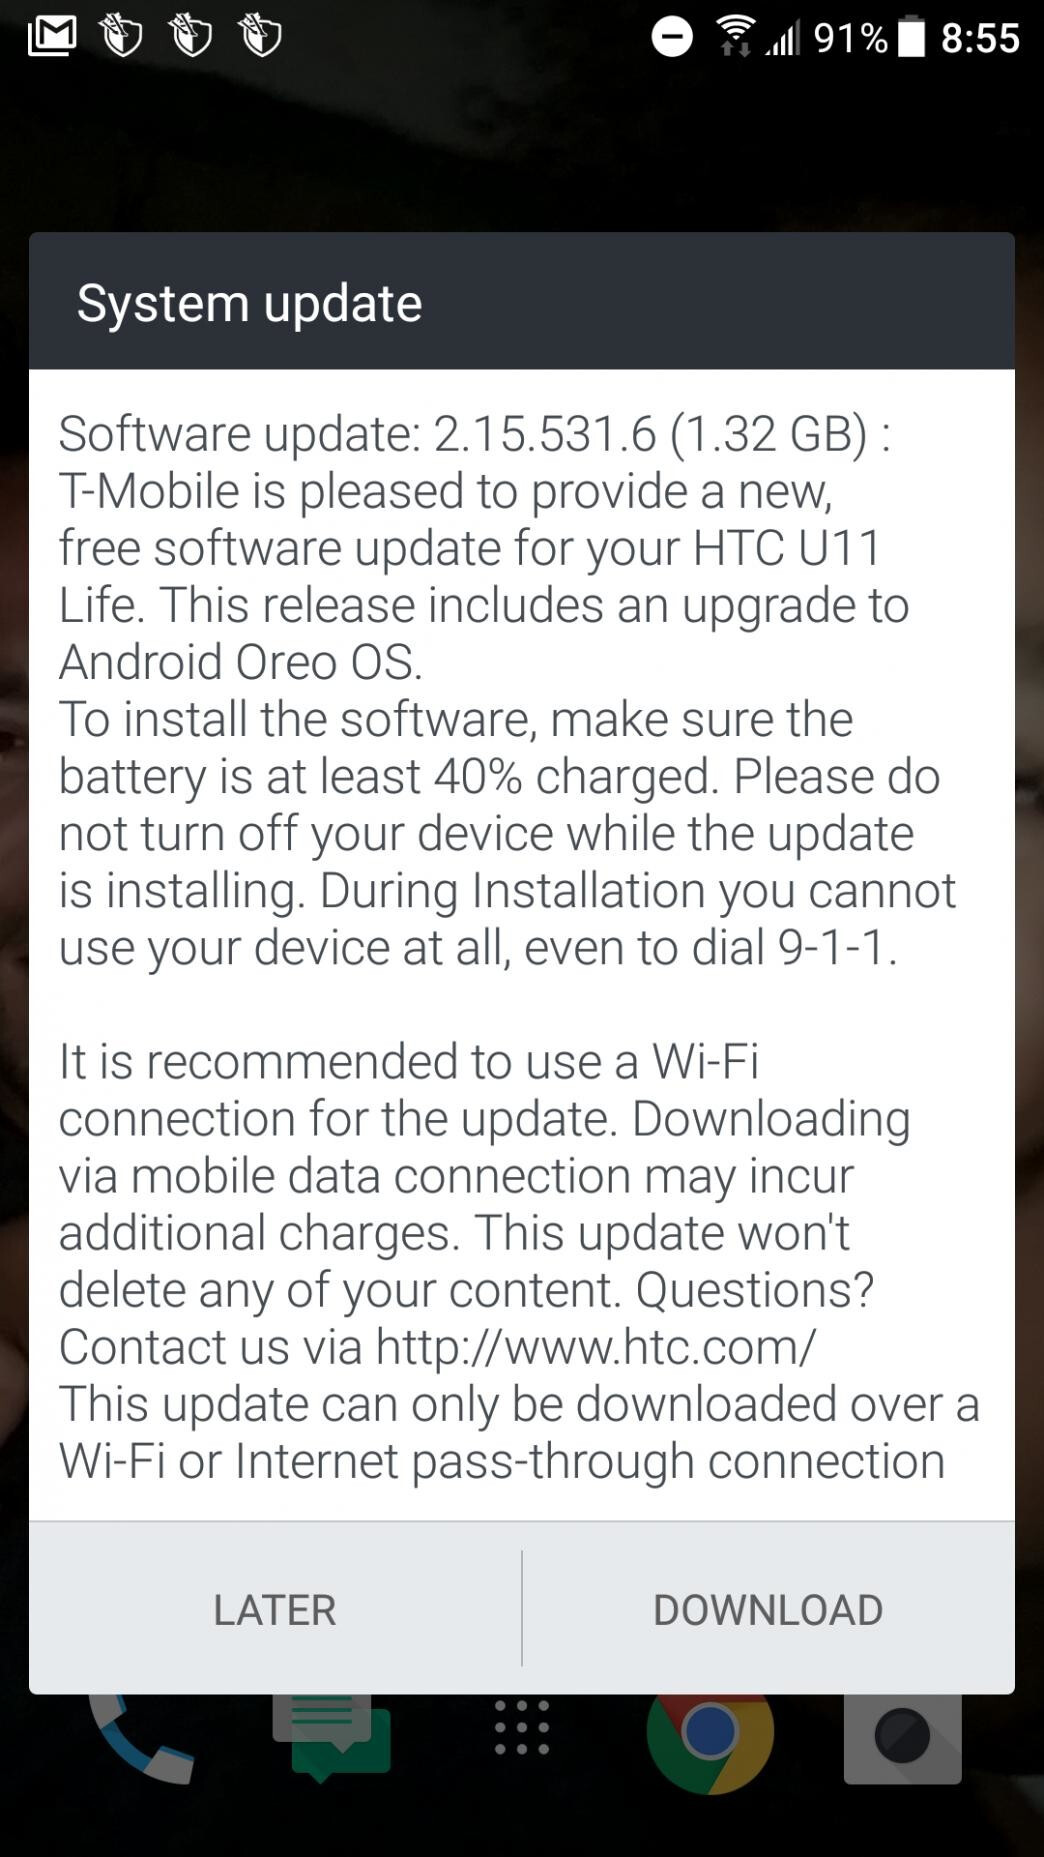 HTC U11 Life starts receiving Android 8 0 Oreo update at T-Mobile